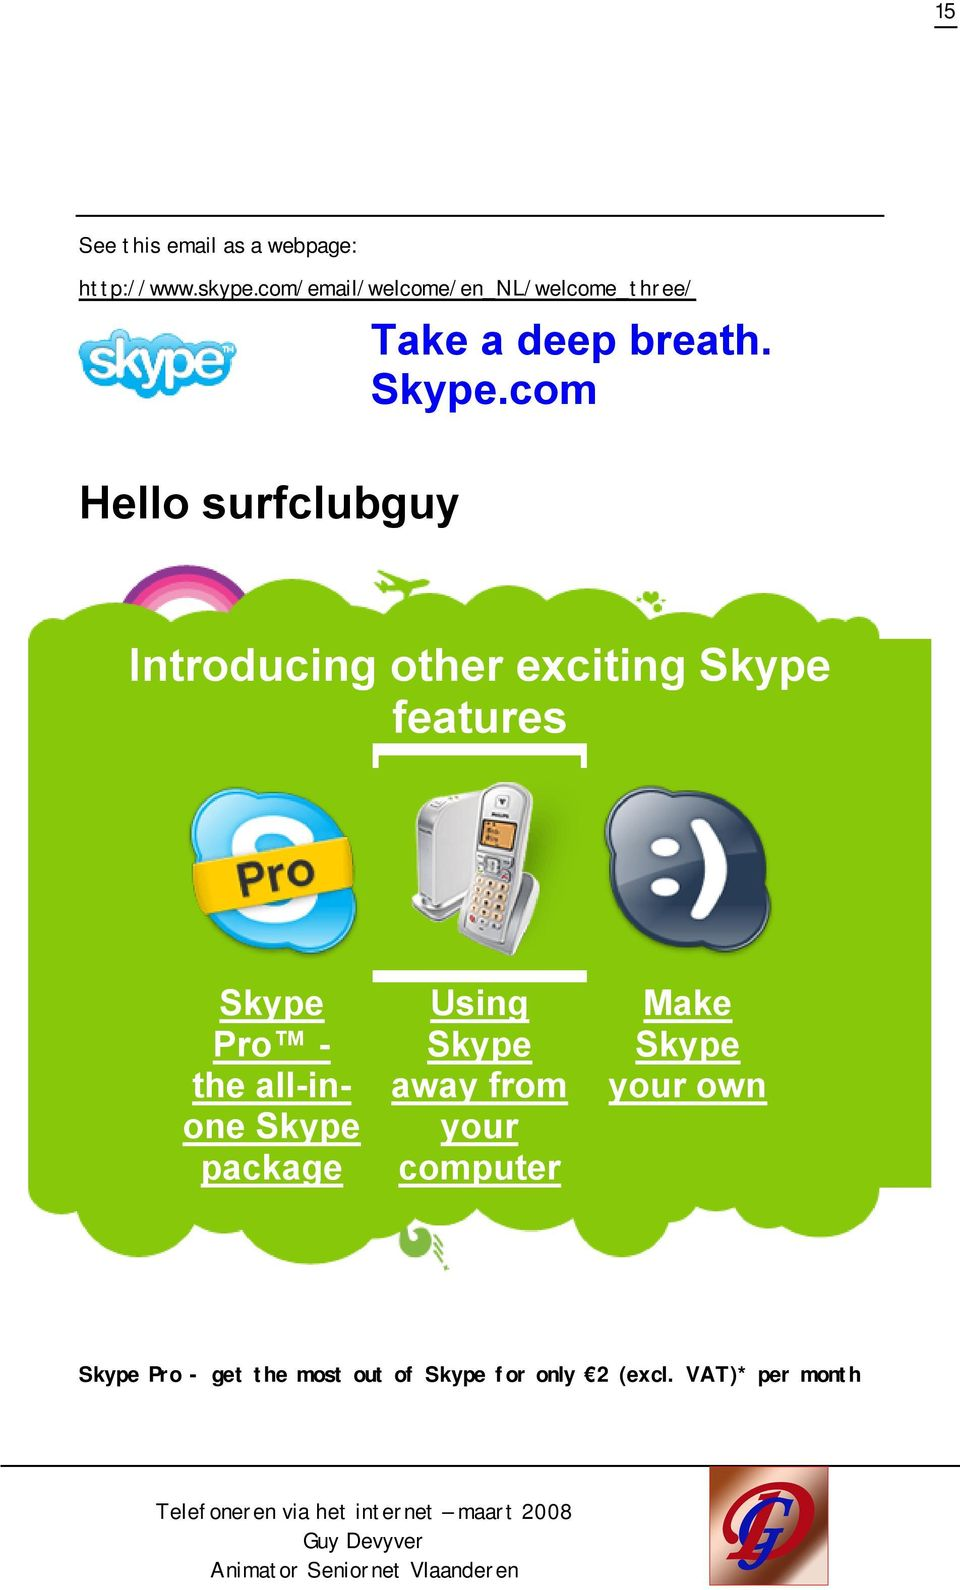 com Hello surfclubguy Introducing other exciting Skype features Skype Pro - the